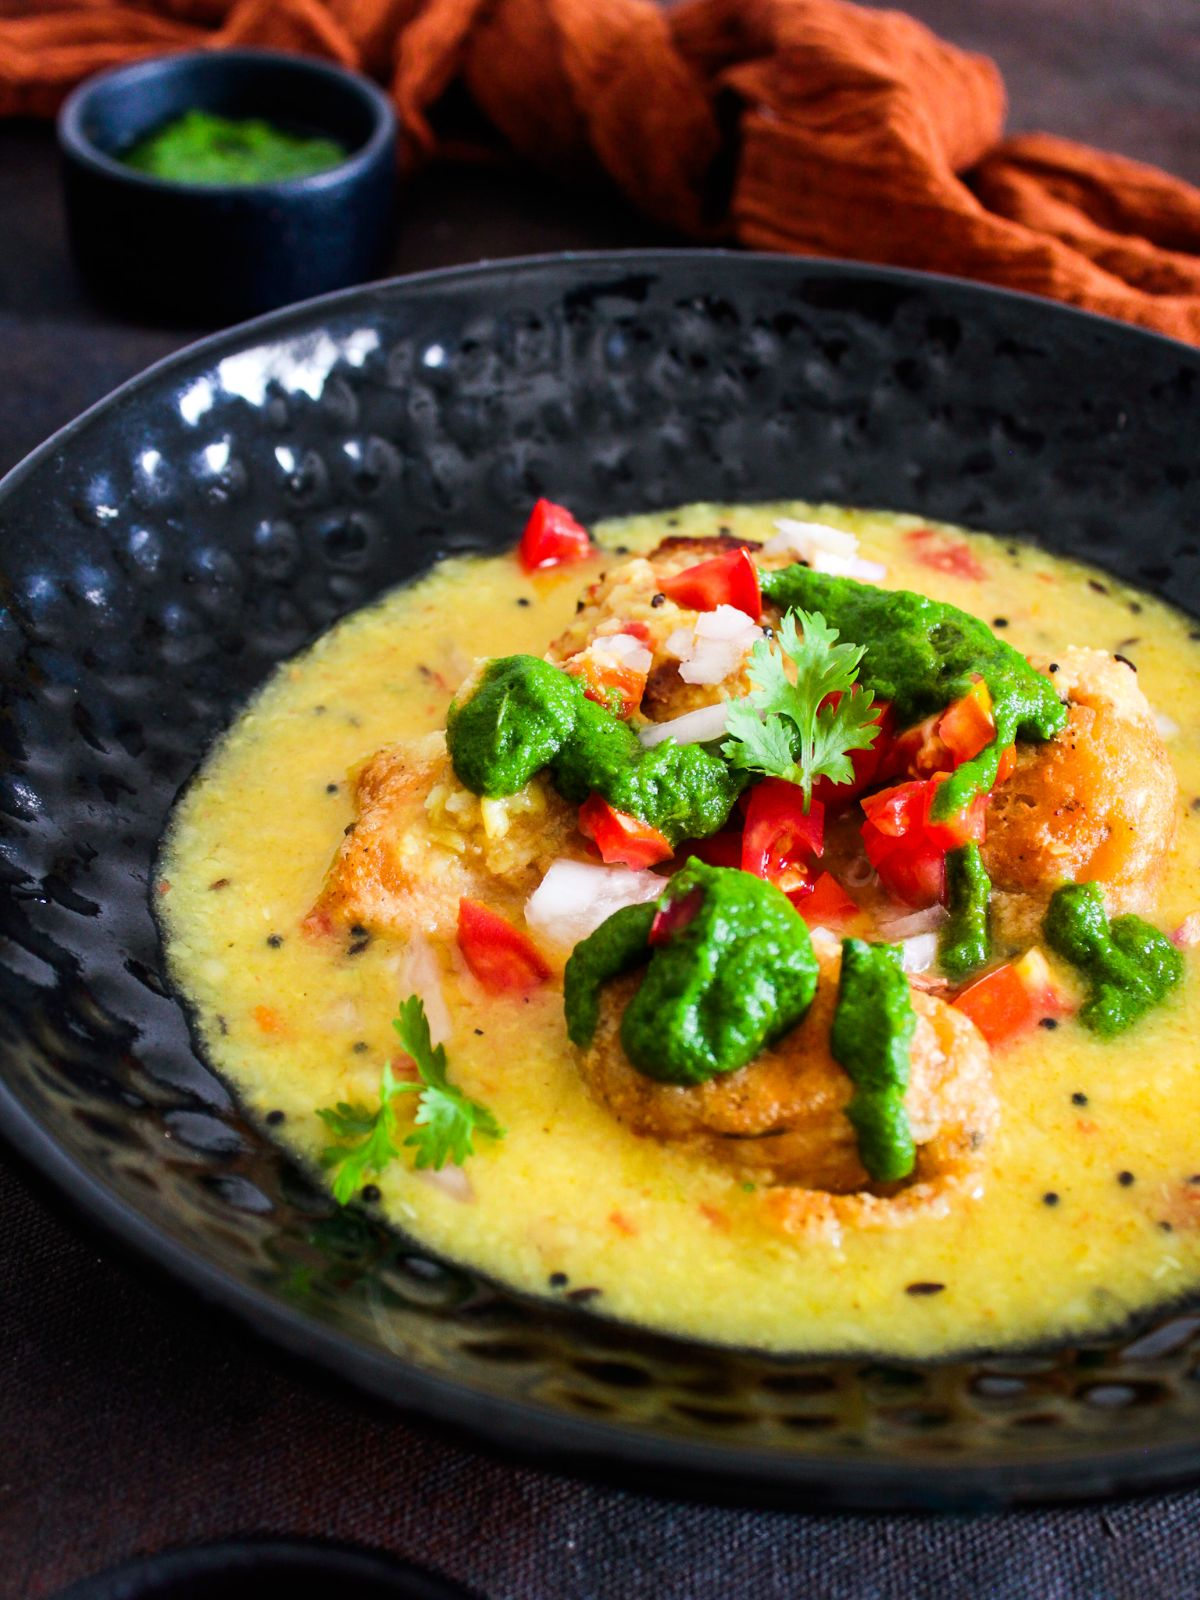 Black bowl of yellow soup with fritters in the middle topped by chutney and tomatoes